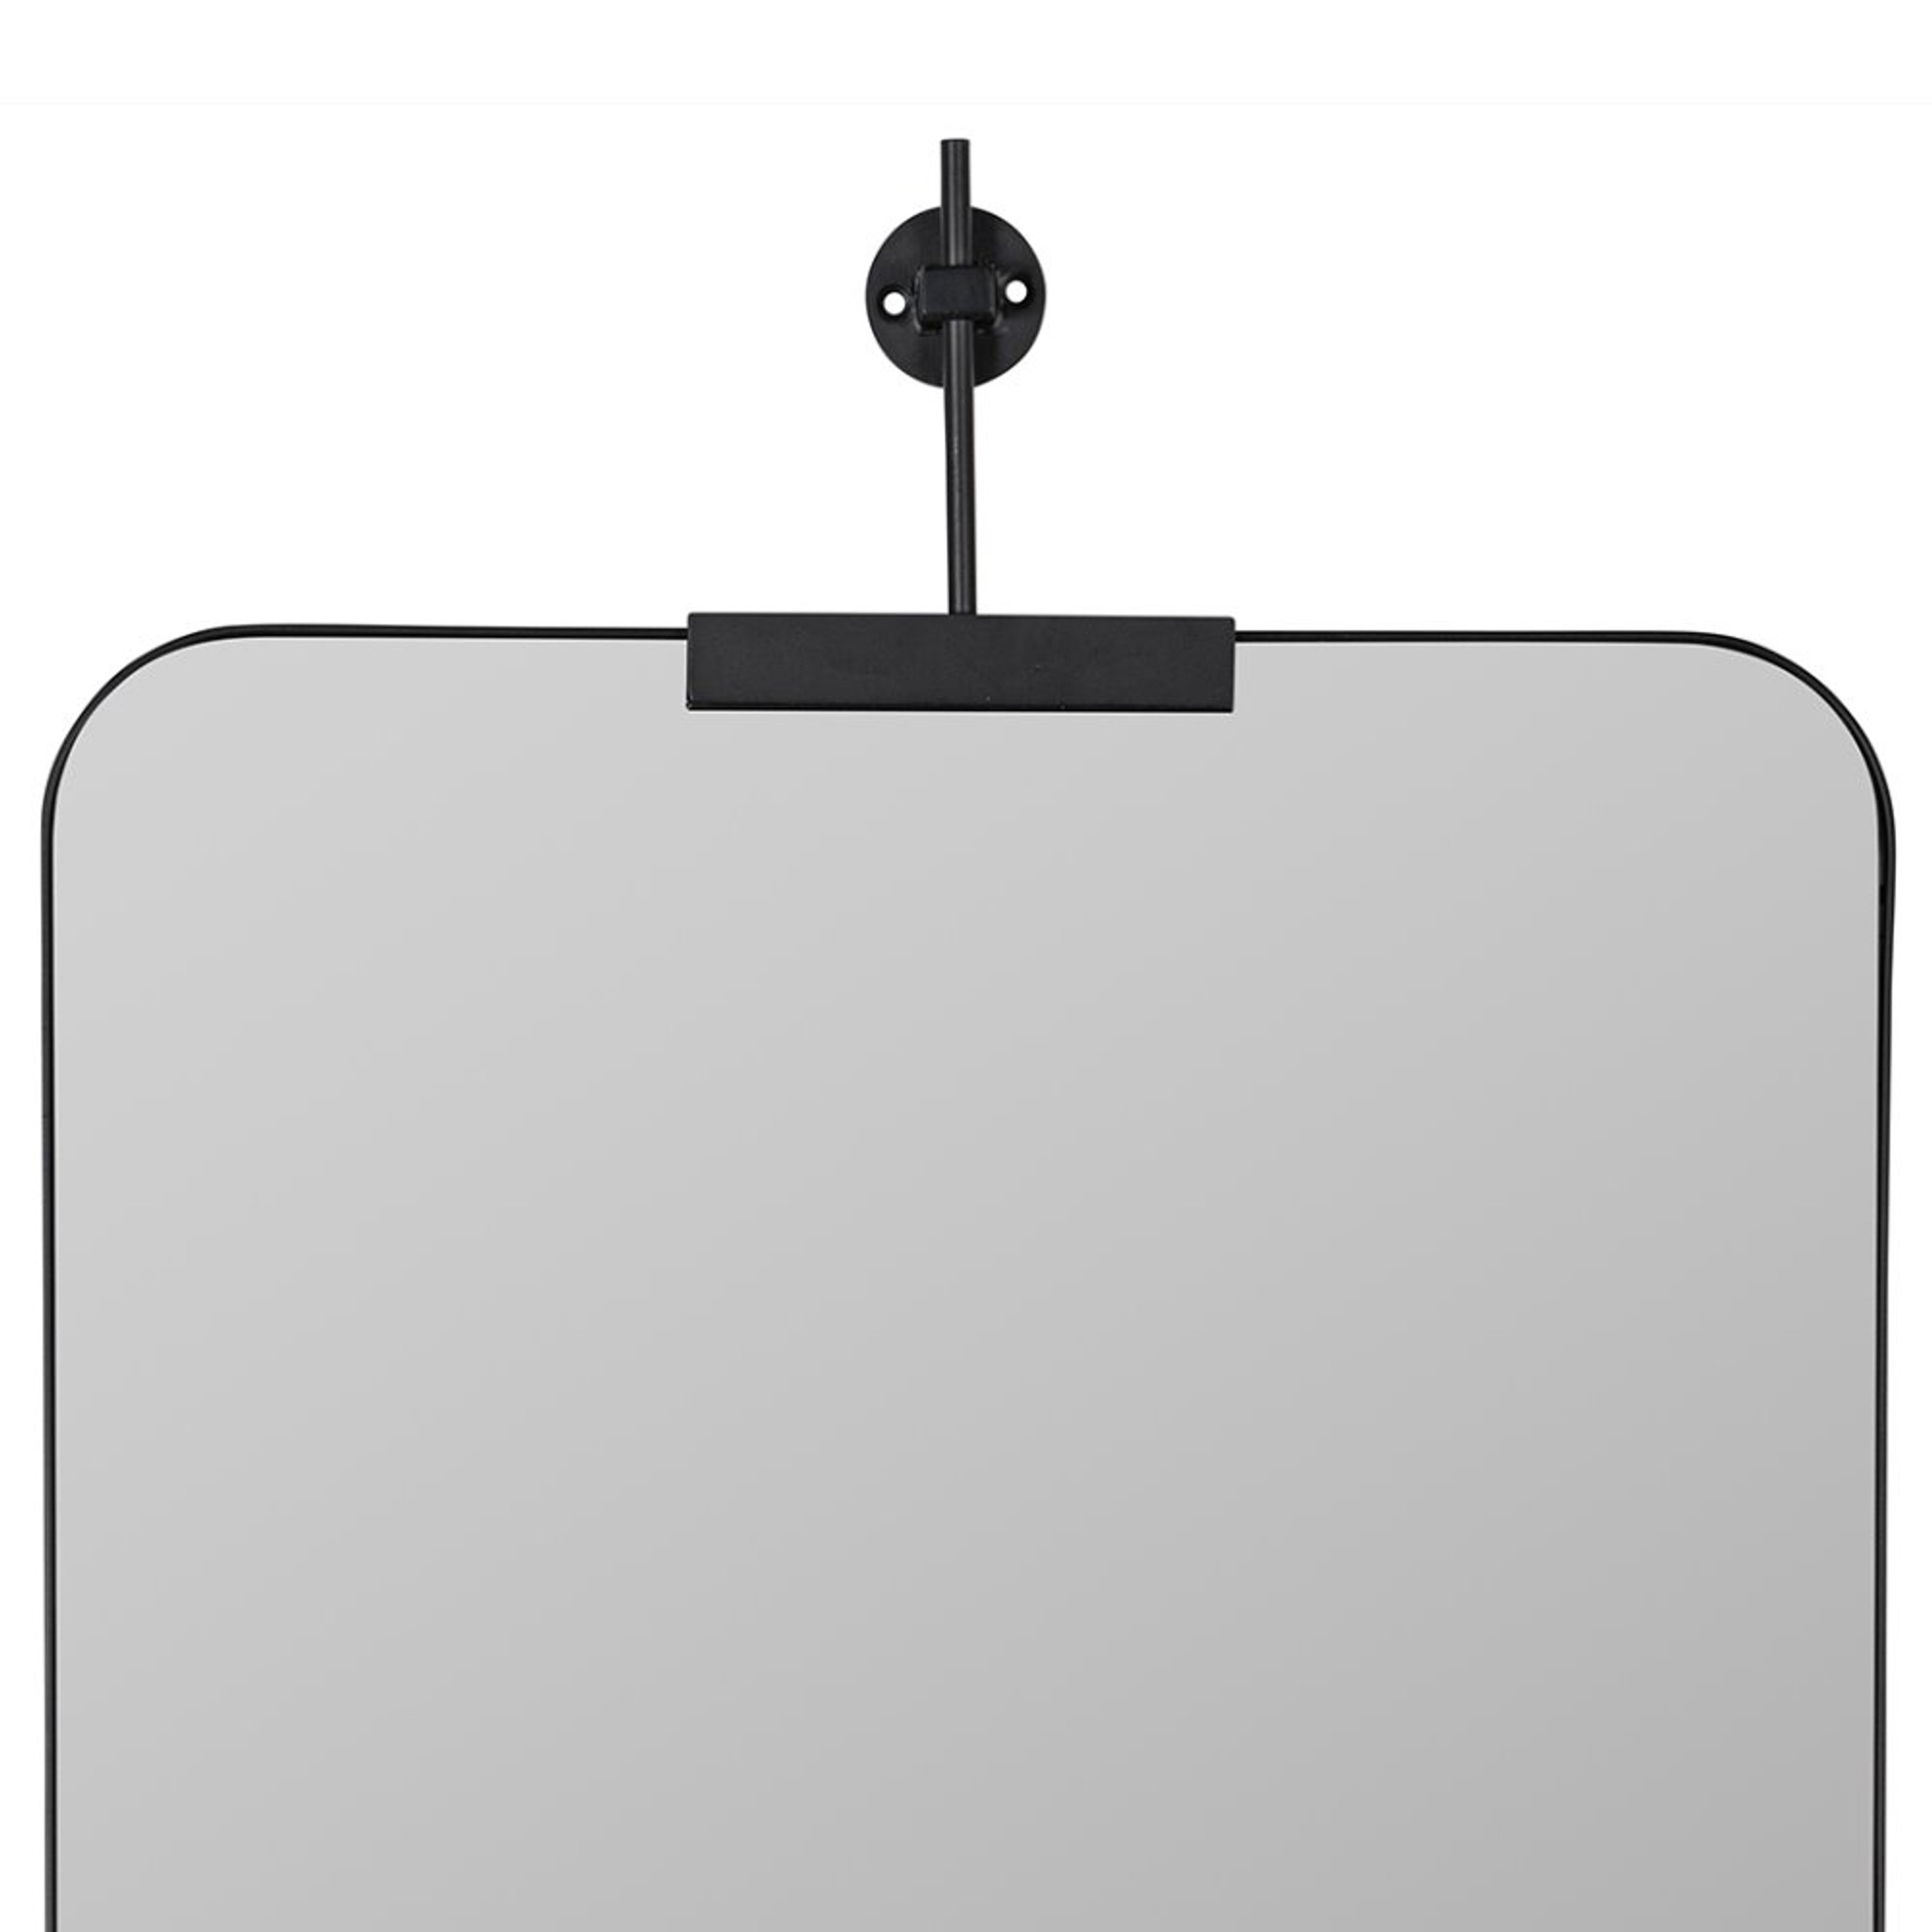 41931 cooper classics black modern rounded corners bracket clamp wall mirror